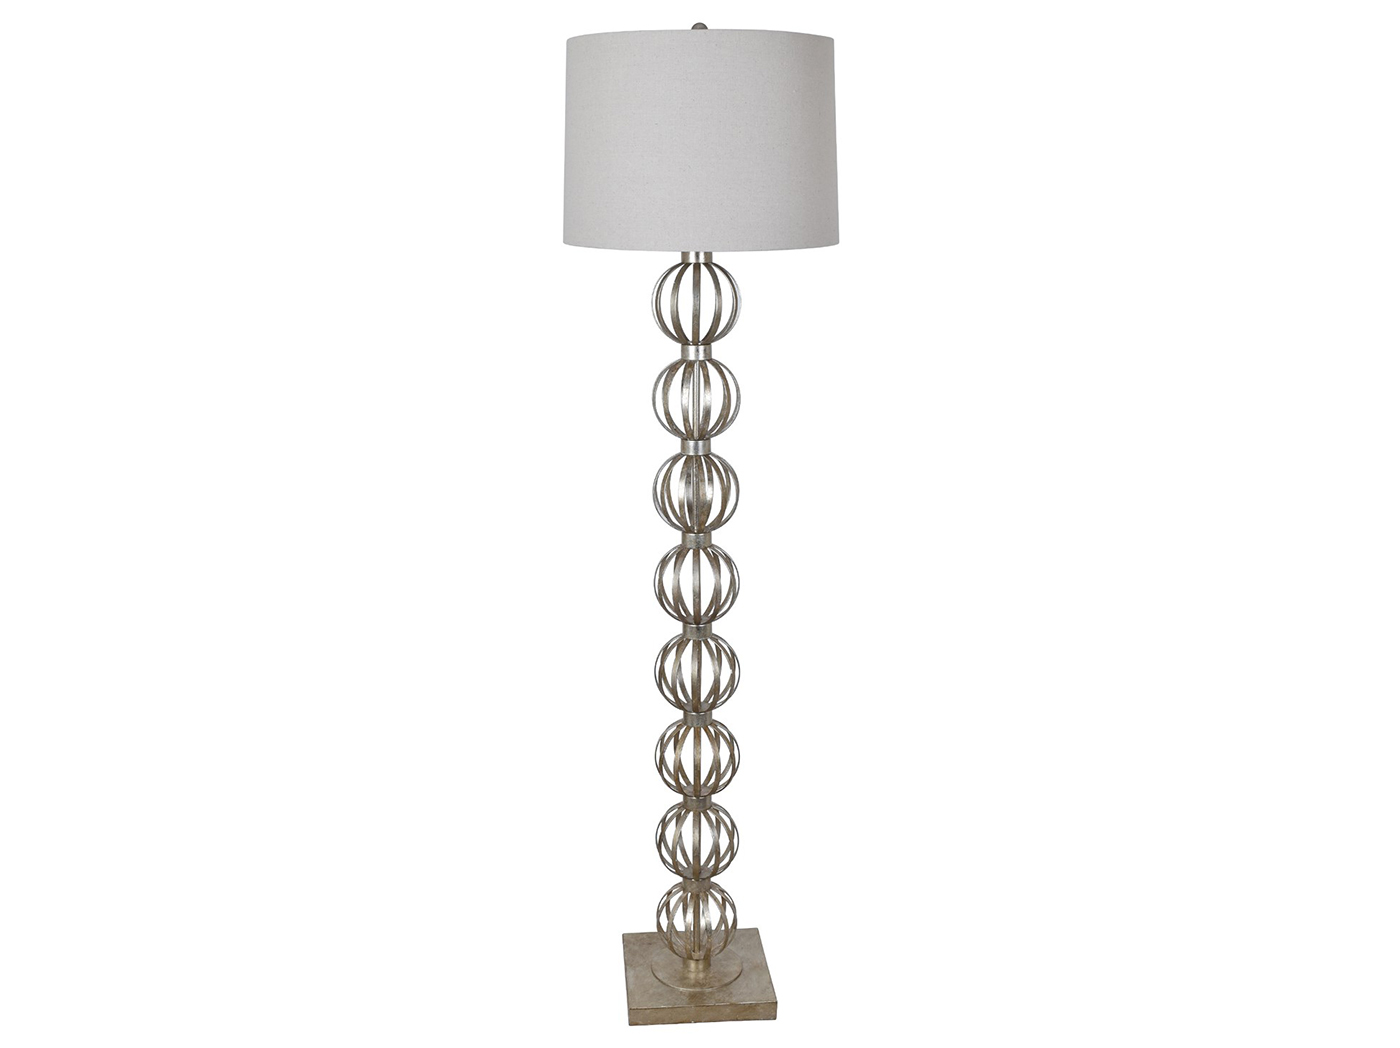 "Metal Silver Leaf Balls Floor Lamp 64""H"